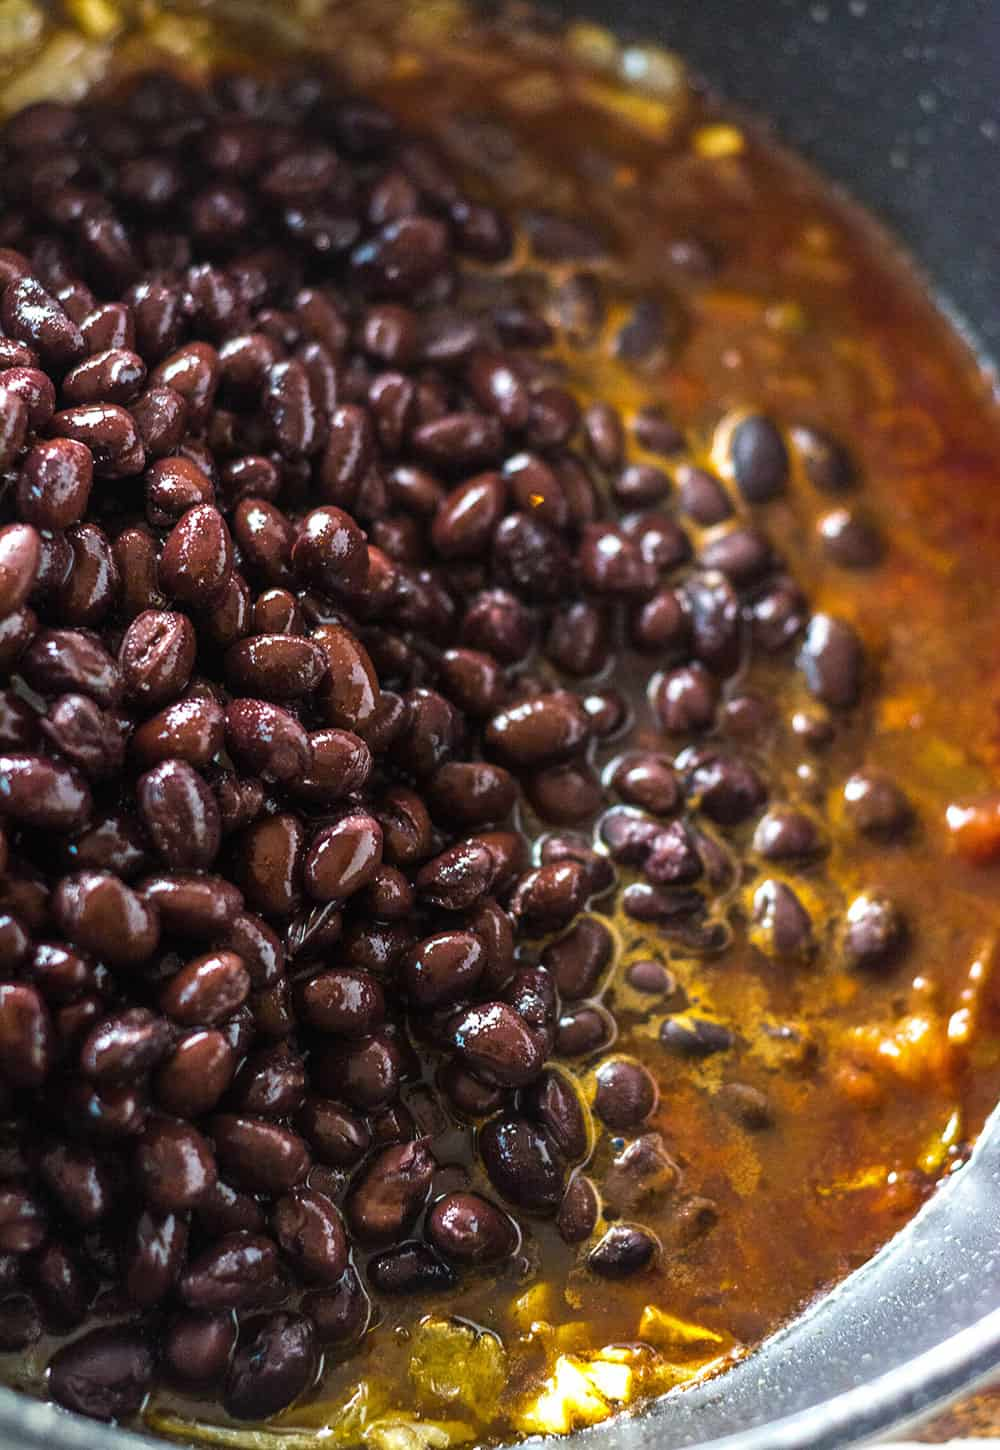 Black Bean Tacos, beans being cooked in spices